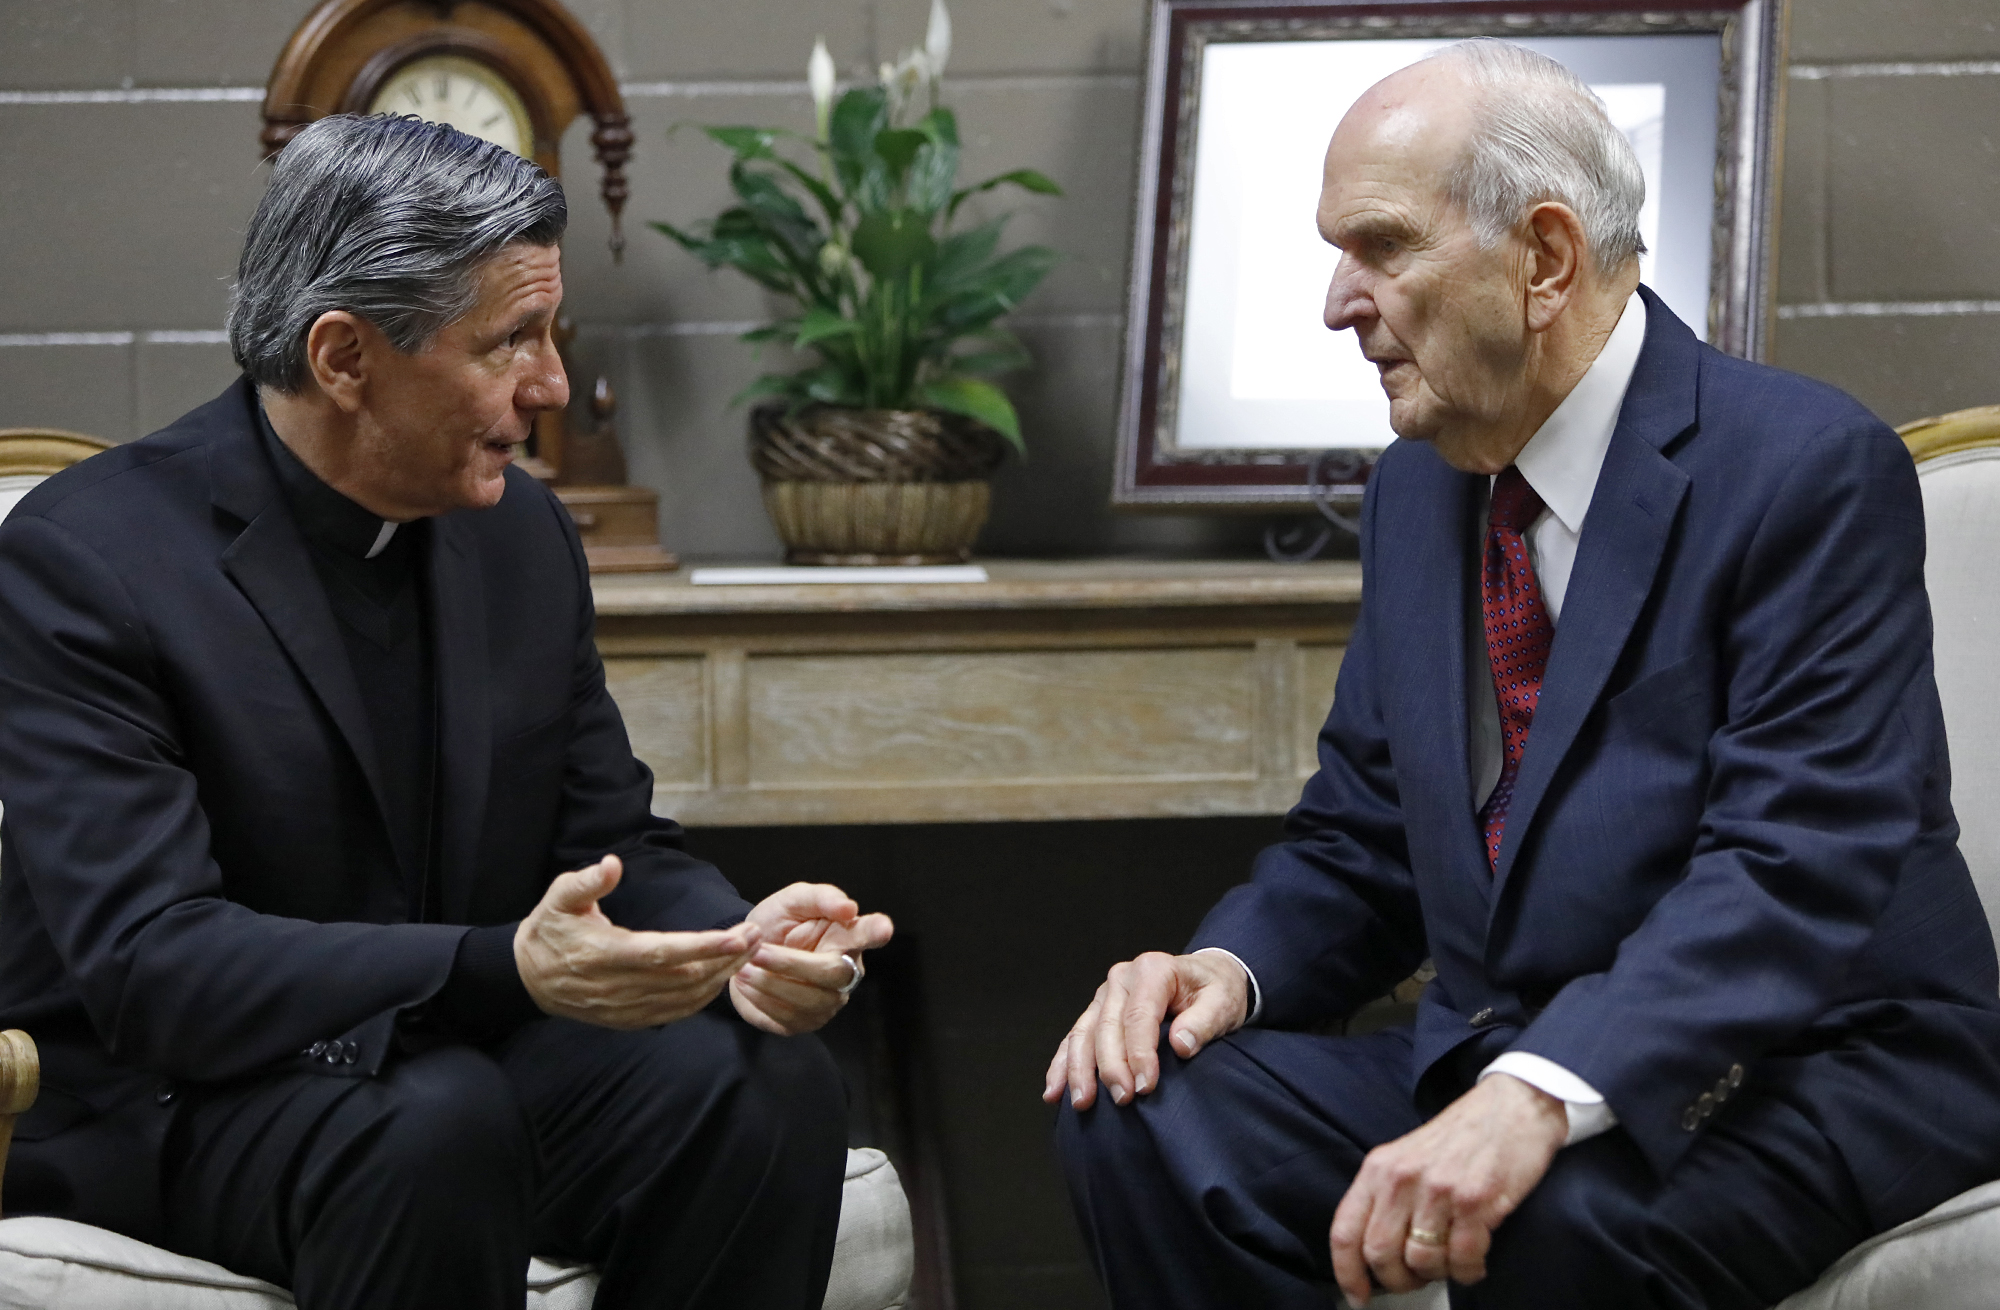 Archbishop of San Antonio Gustavo Garcia-Siller (left) speaks with President Russell M. Nelson of The Church of Jesus Christ of Latter-day Saints before the devotional held Sunday, Nov. 18, 2018, at the Alamodome in San Antonio, TX.